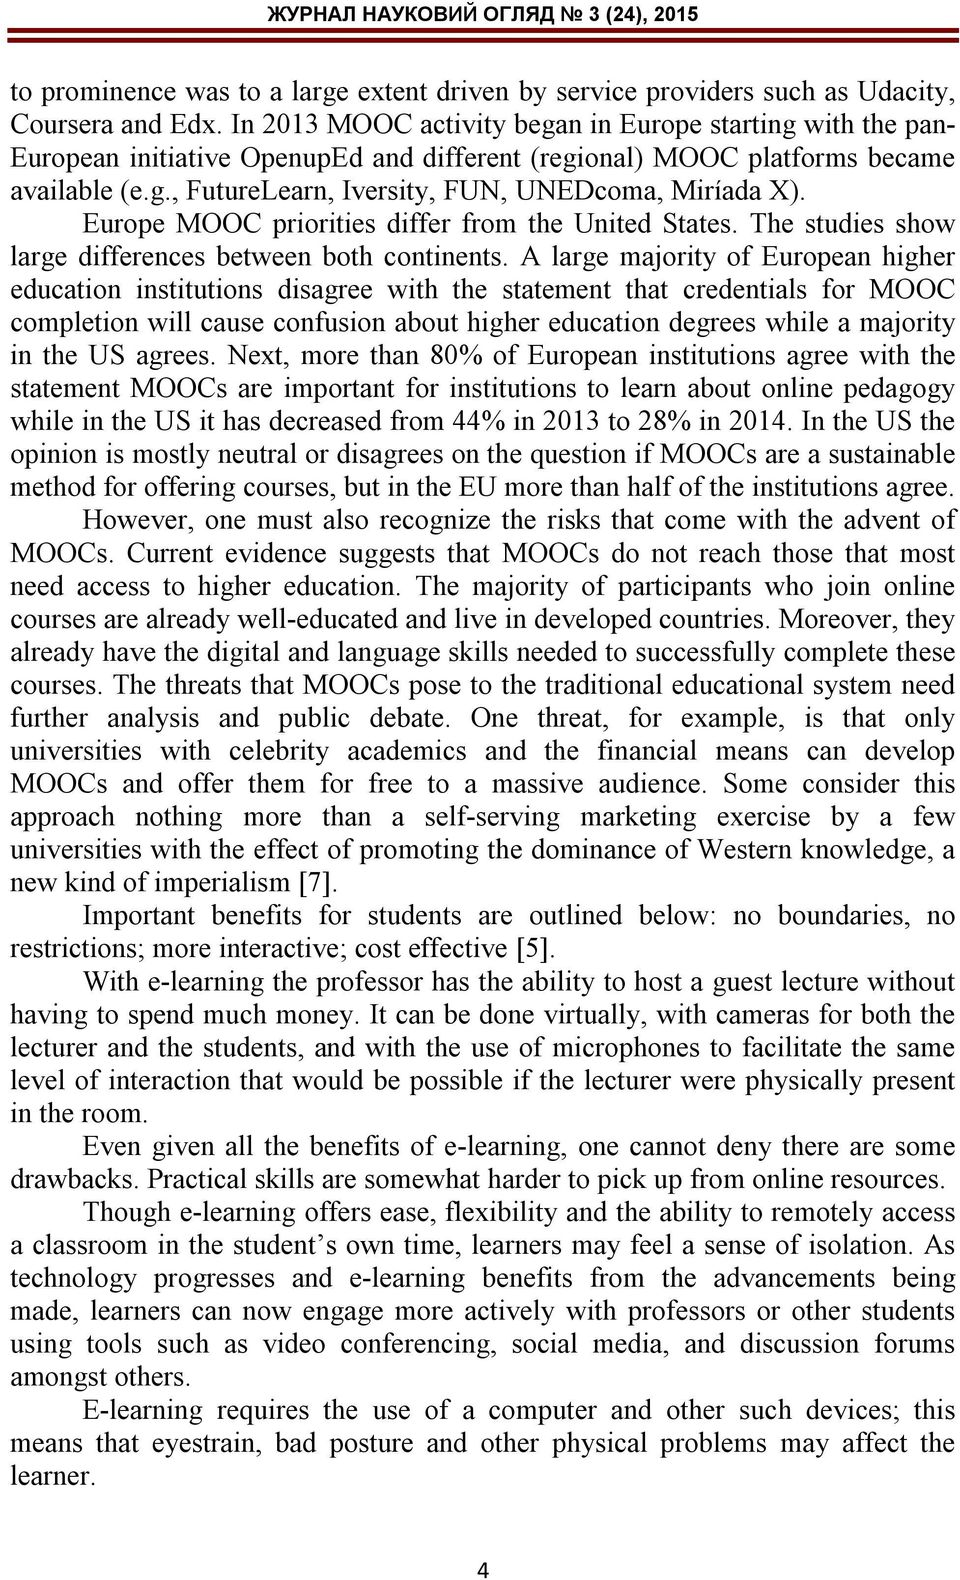 Europe MOOC priorities differ from the United States. The studies show large differences between both continents.